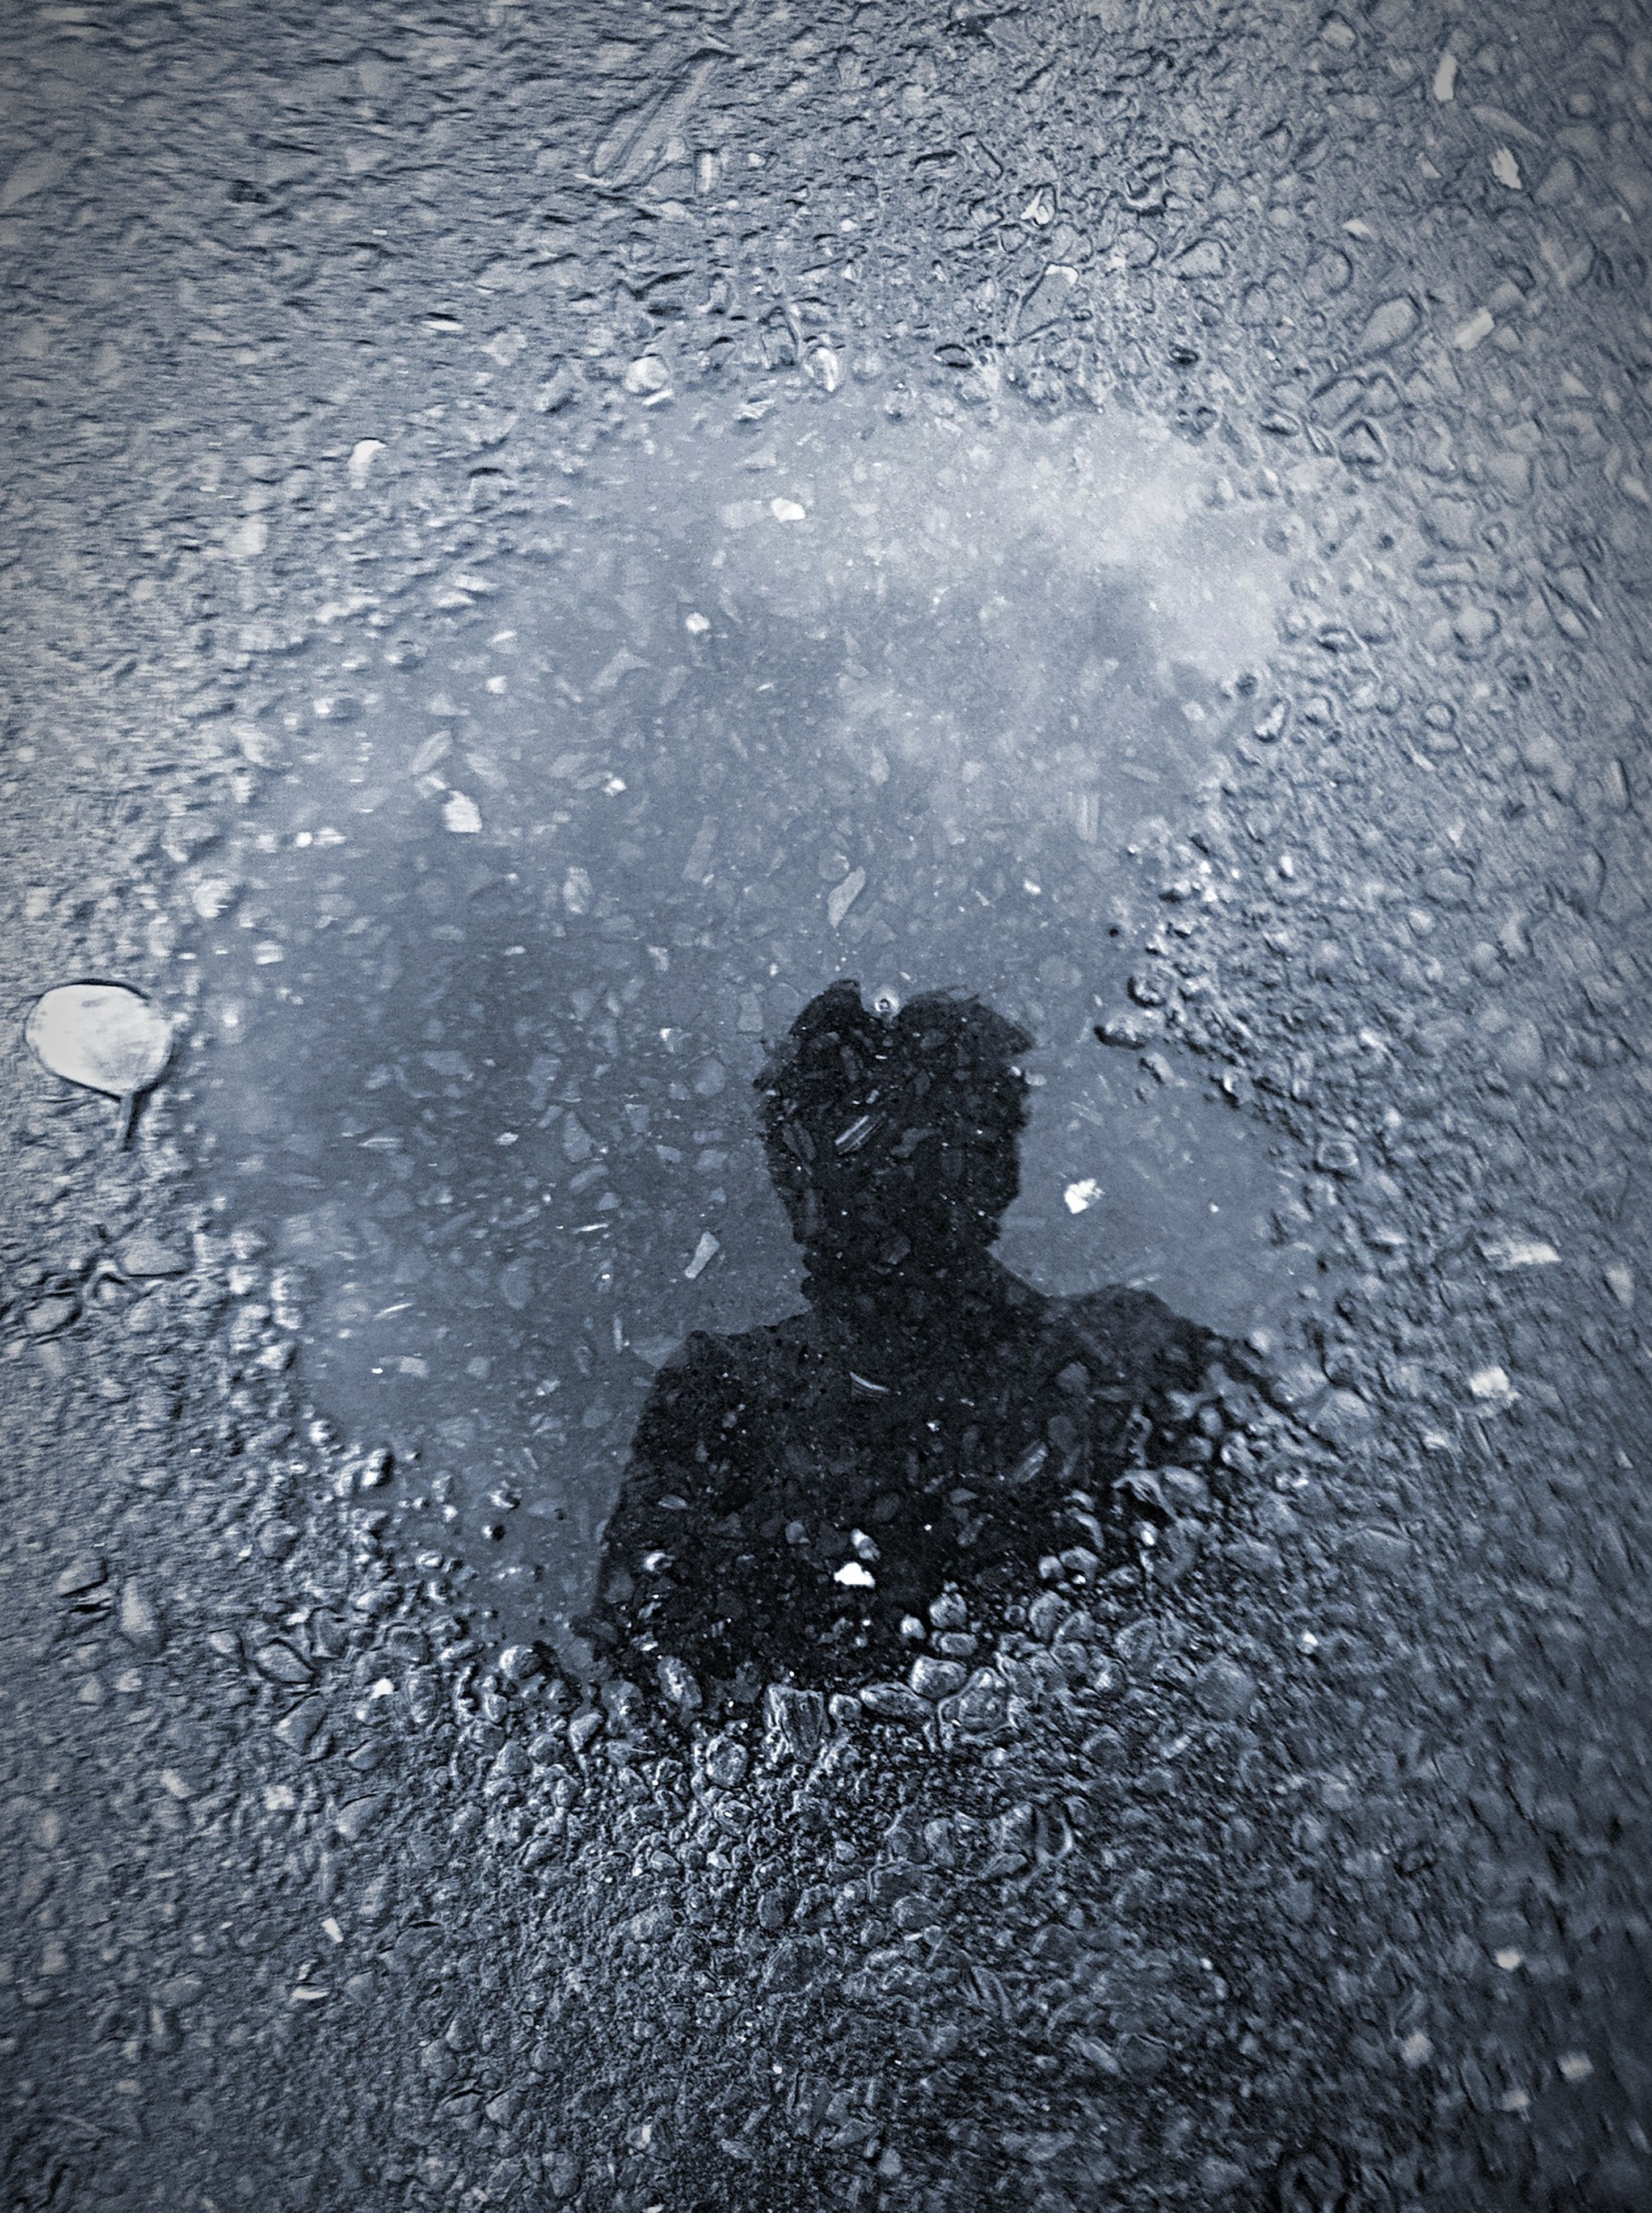 puddle, water, wet, high angle view, street, rain, reflection, asphalt, road, unrecognizable person, lifestyles, outdoors, day, weather, men, season, standing, leisure activity